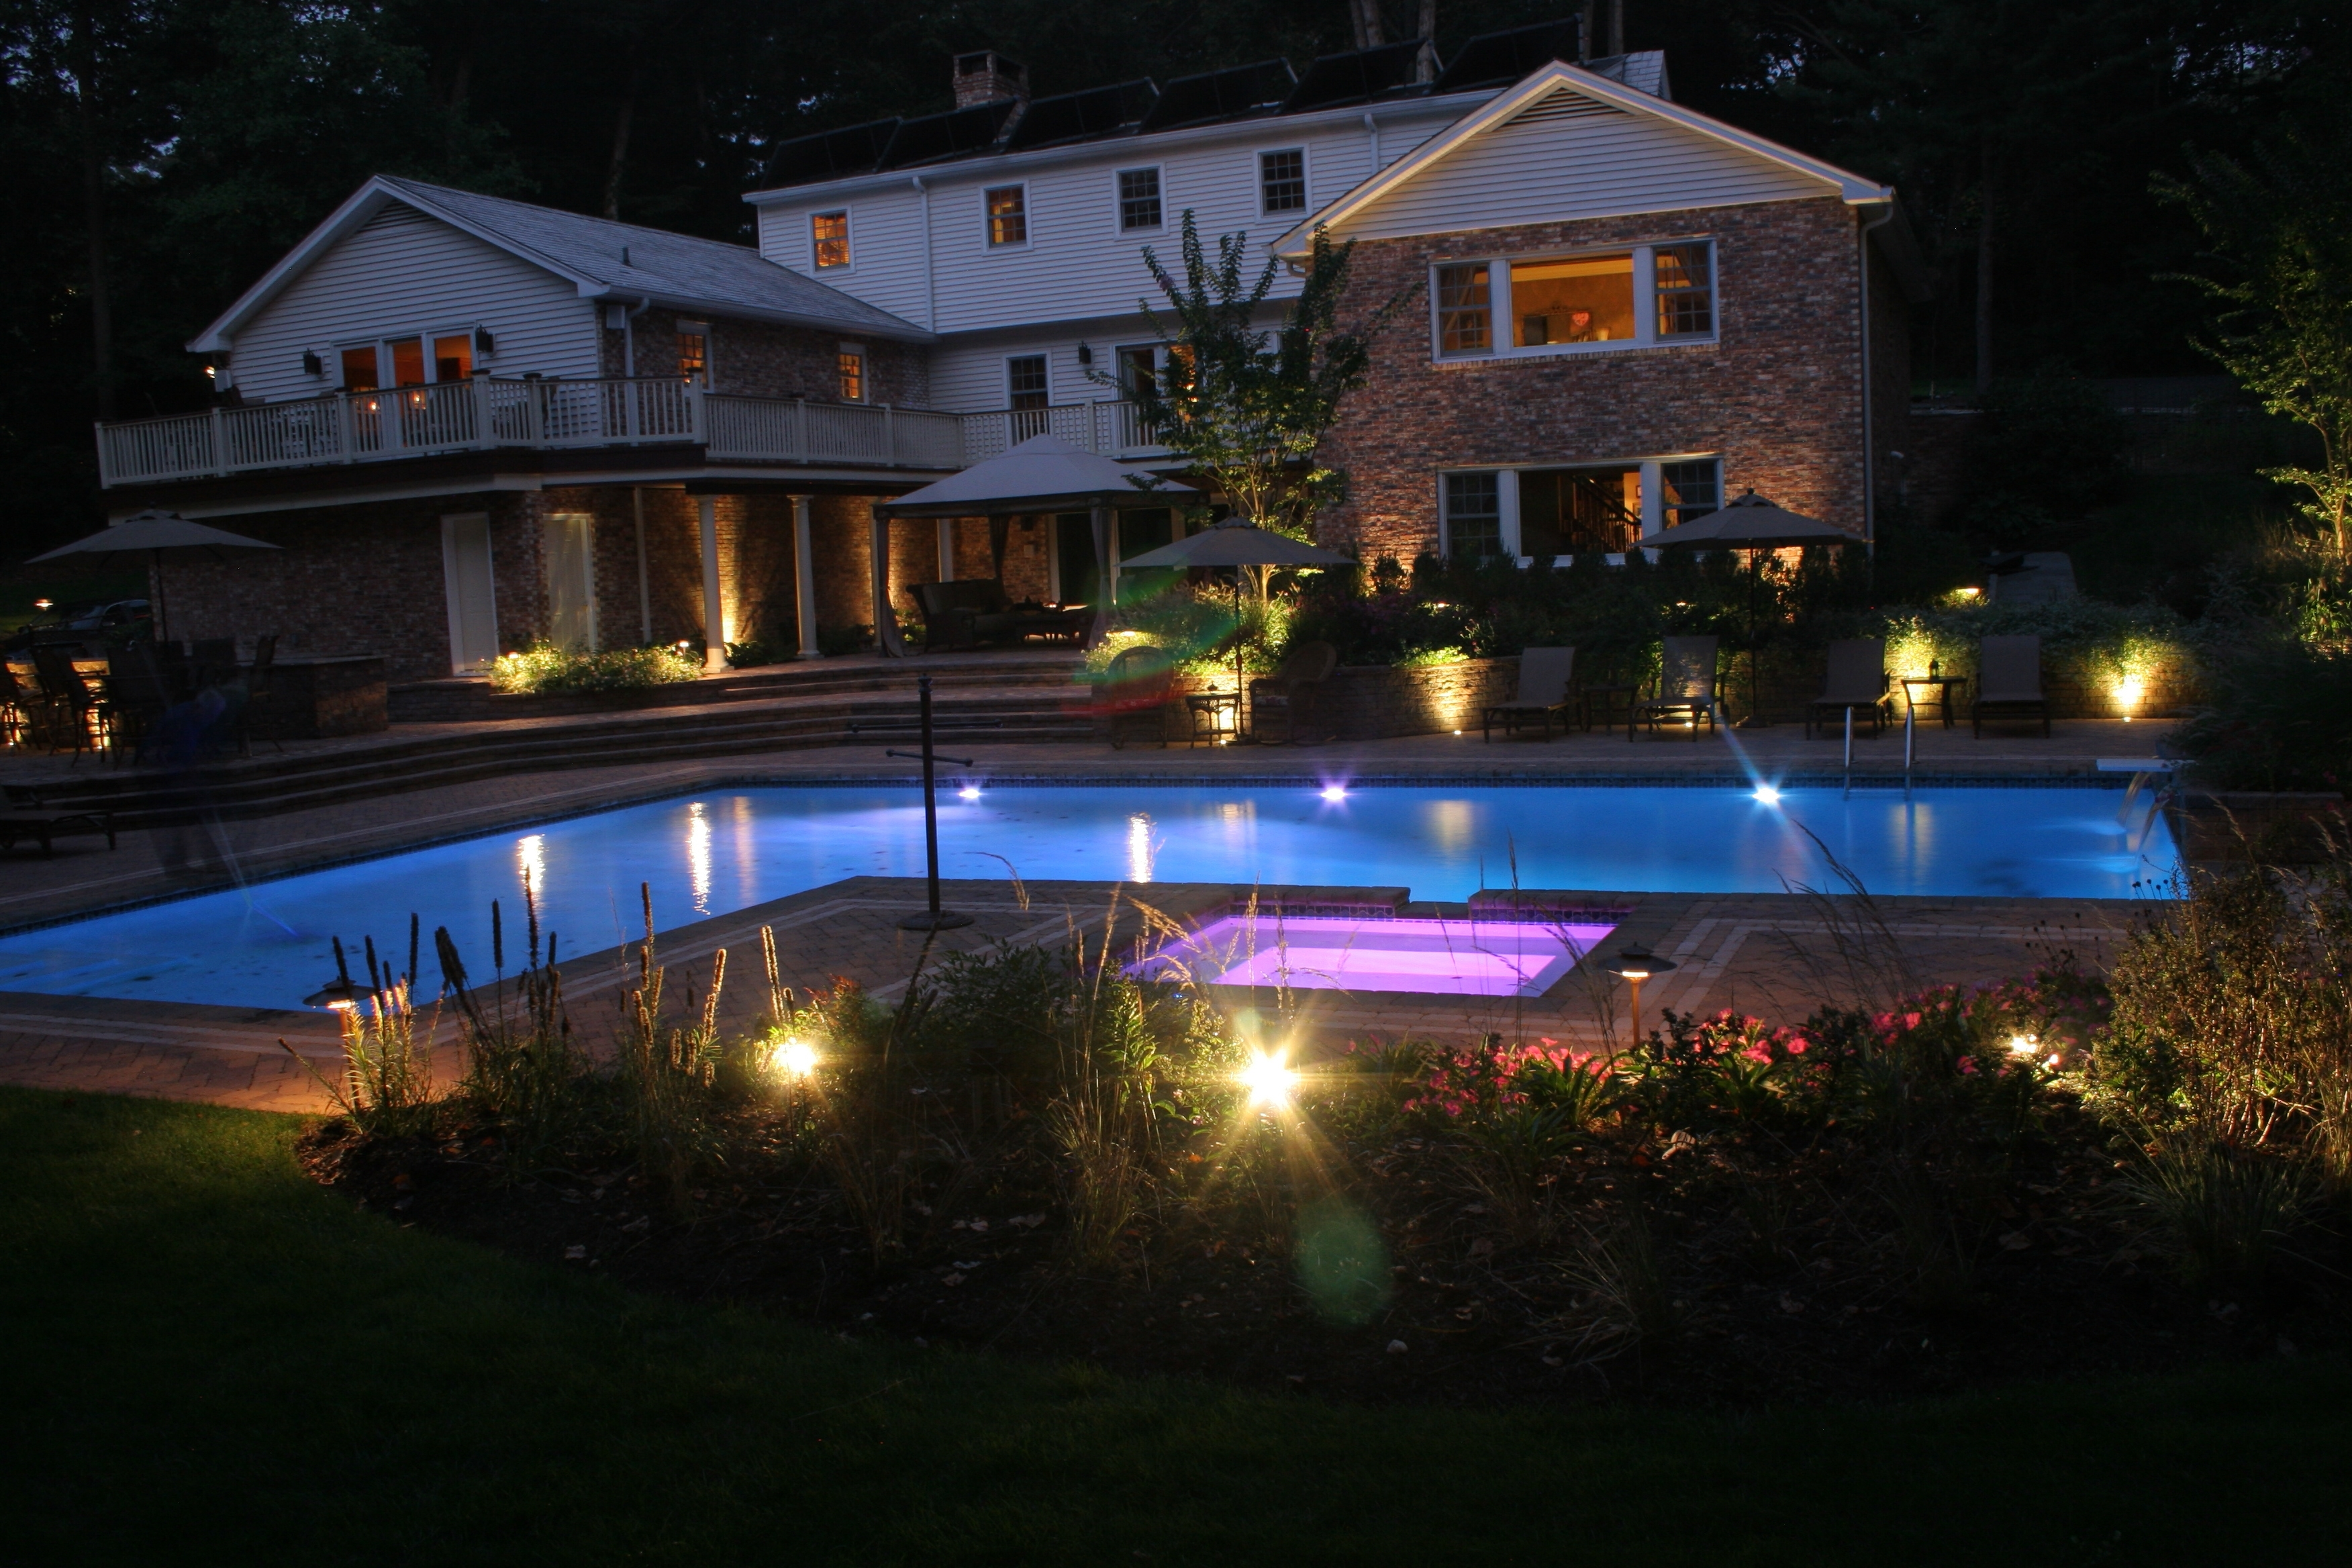 Low Voltage Outdoor Lighting Intended For Most Popular Lamp: Efficient Lighting Solution With Hampton Bay Low Voltage (View 20 of 20)